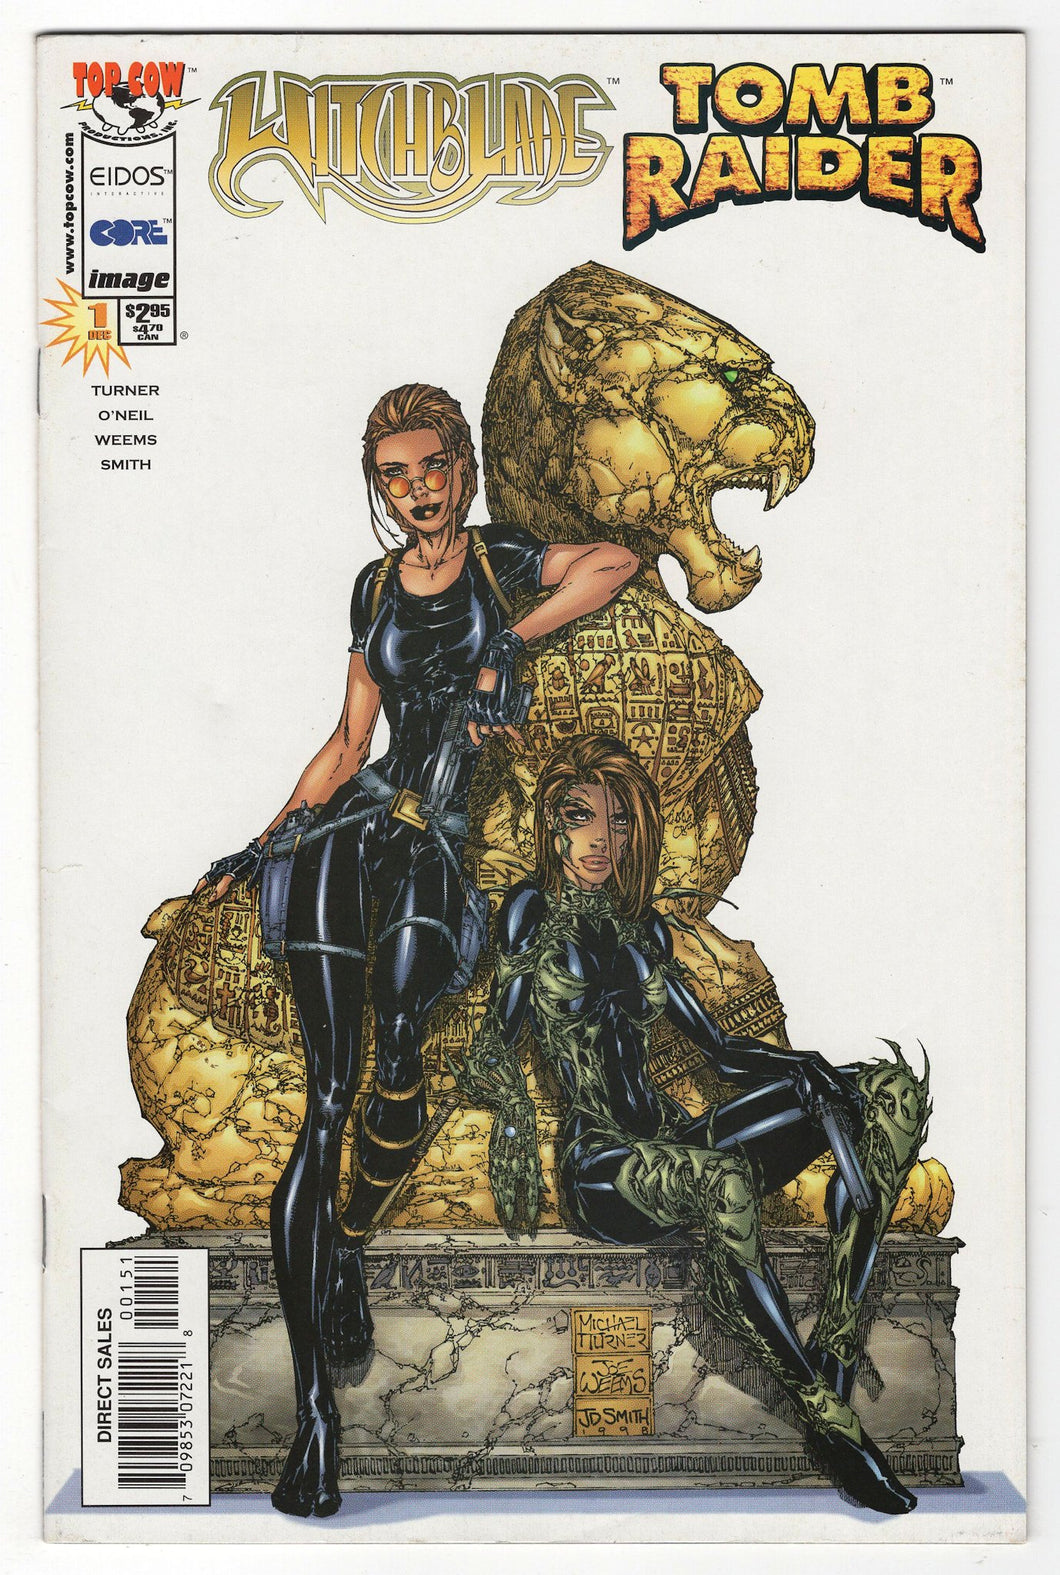 Witchblade Tomb Raider #1 Variant Cover Front